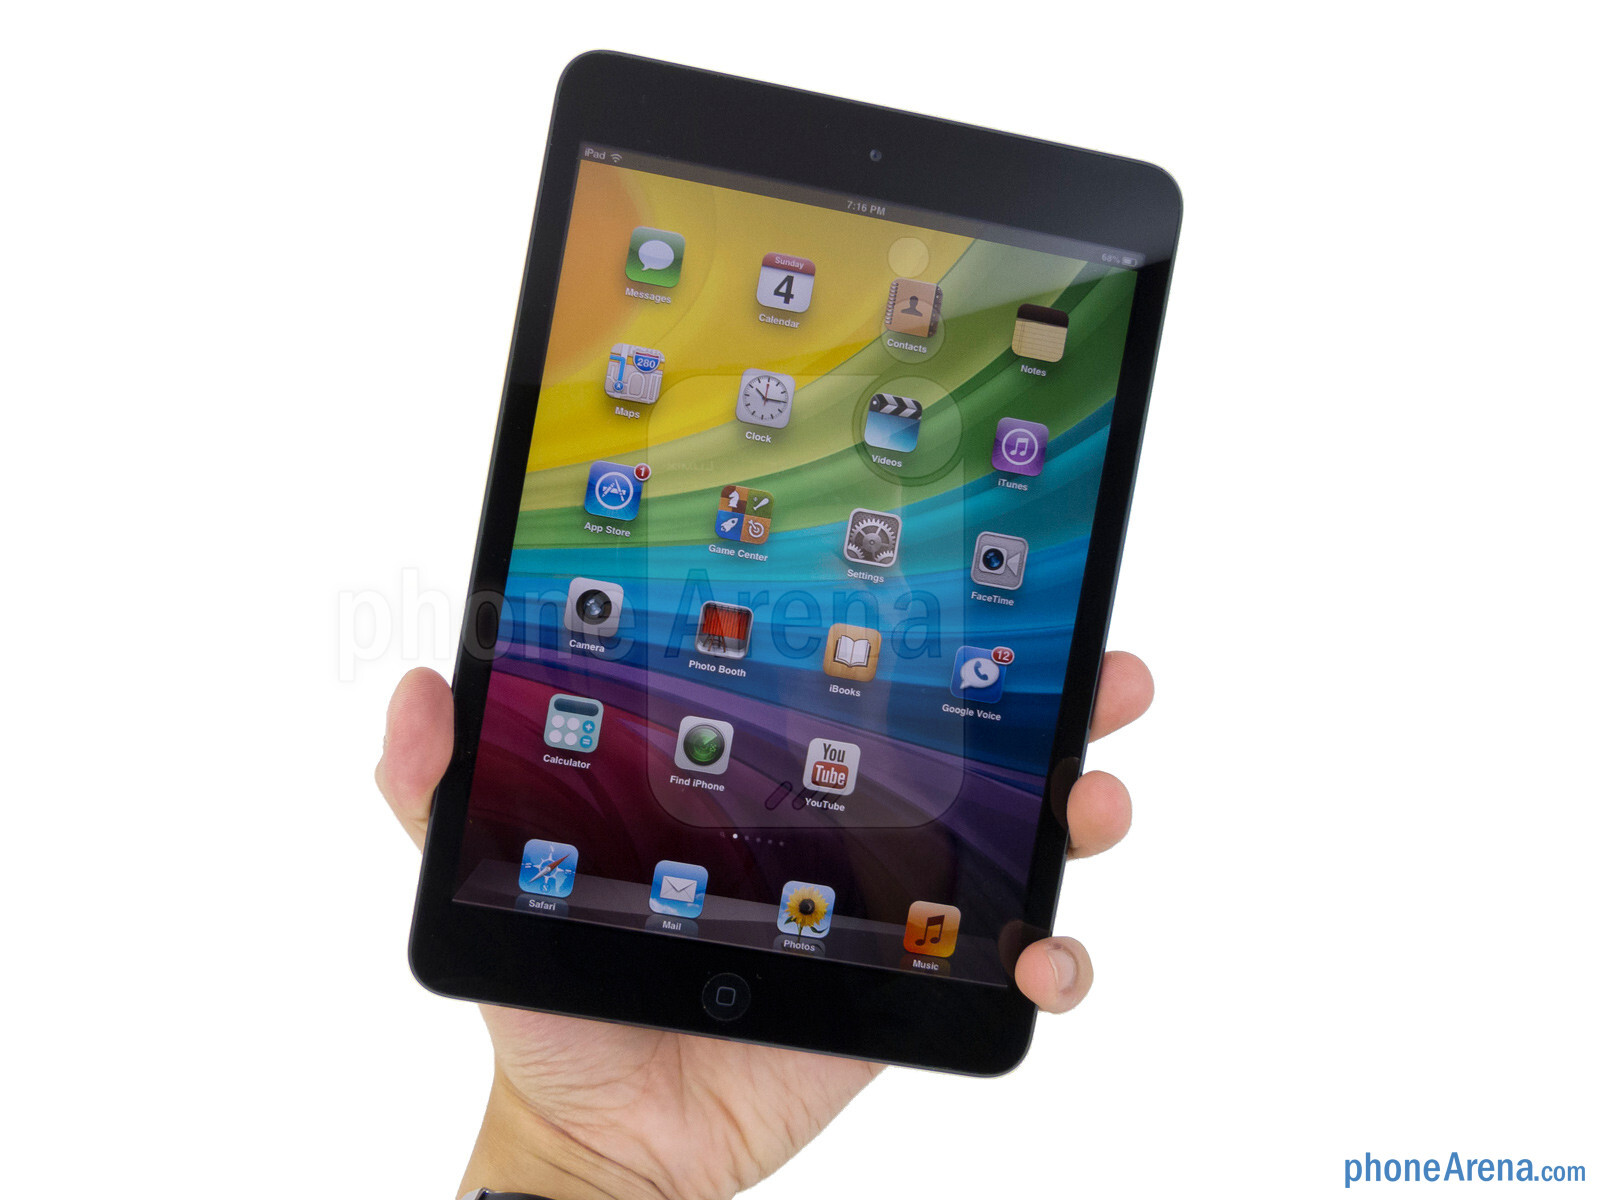 ipad mini review Last year, apple delivered a dud of an ipad i'm not talking about the ipad air 2, which set an incredible new benchmark for the type of speed and performance.